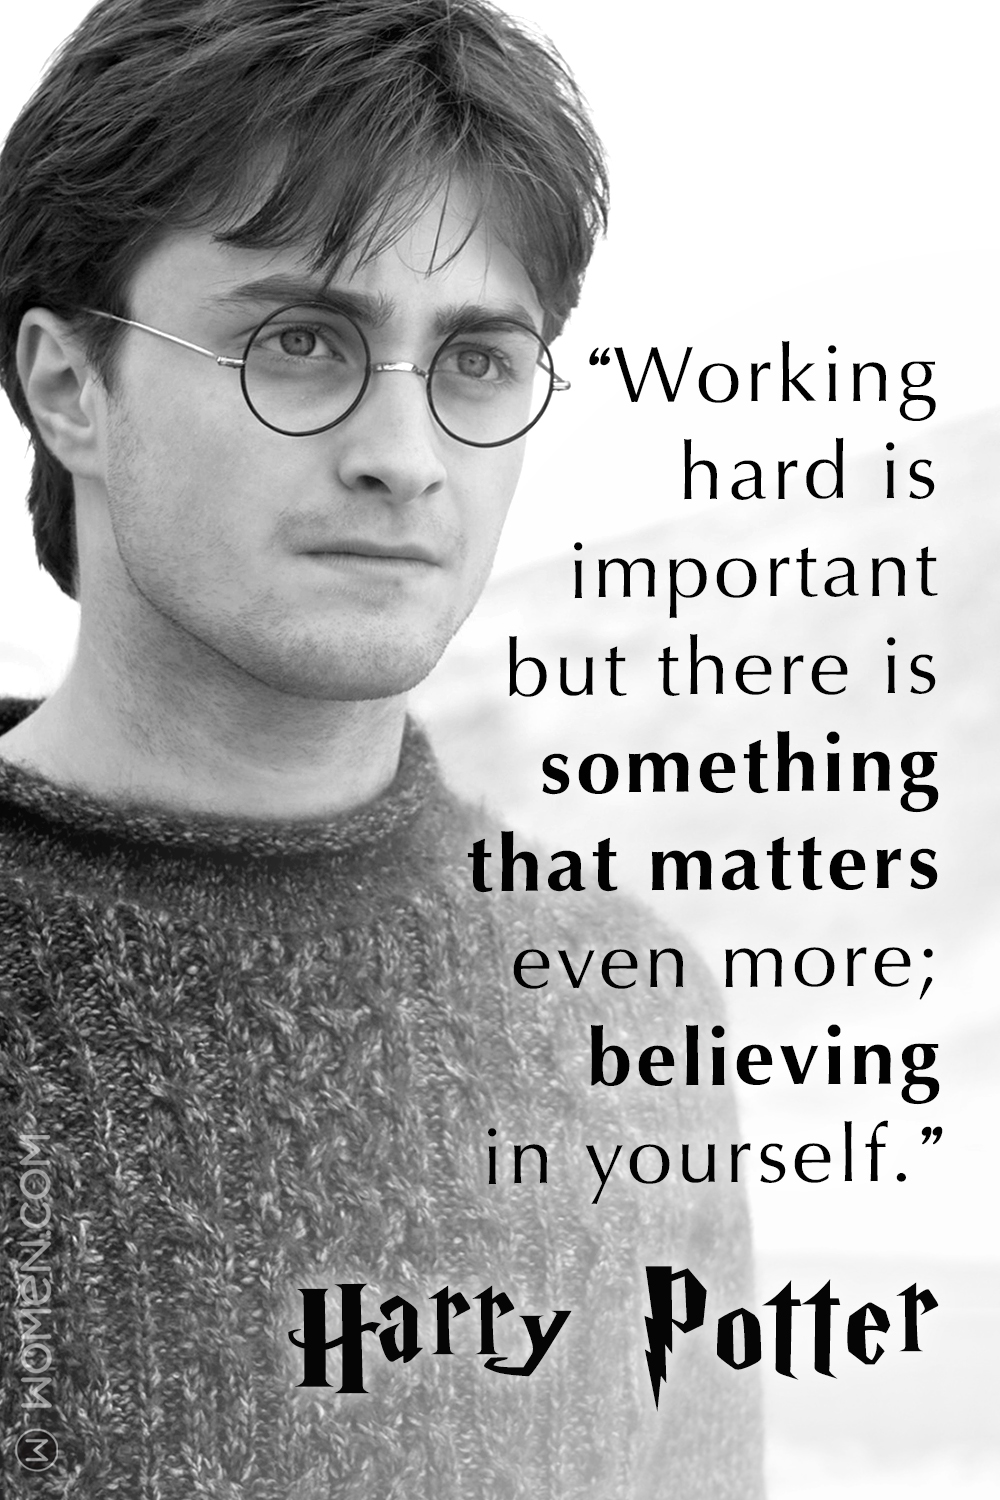 We Solemnly Swear That You'll Be Inspired By These 15 Harry Potter Quotes, We Solemnly Swear by these HP quotes, We Solemnly Swear quotes